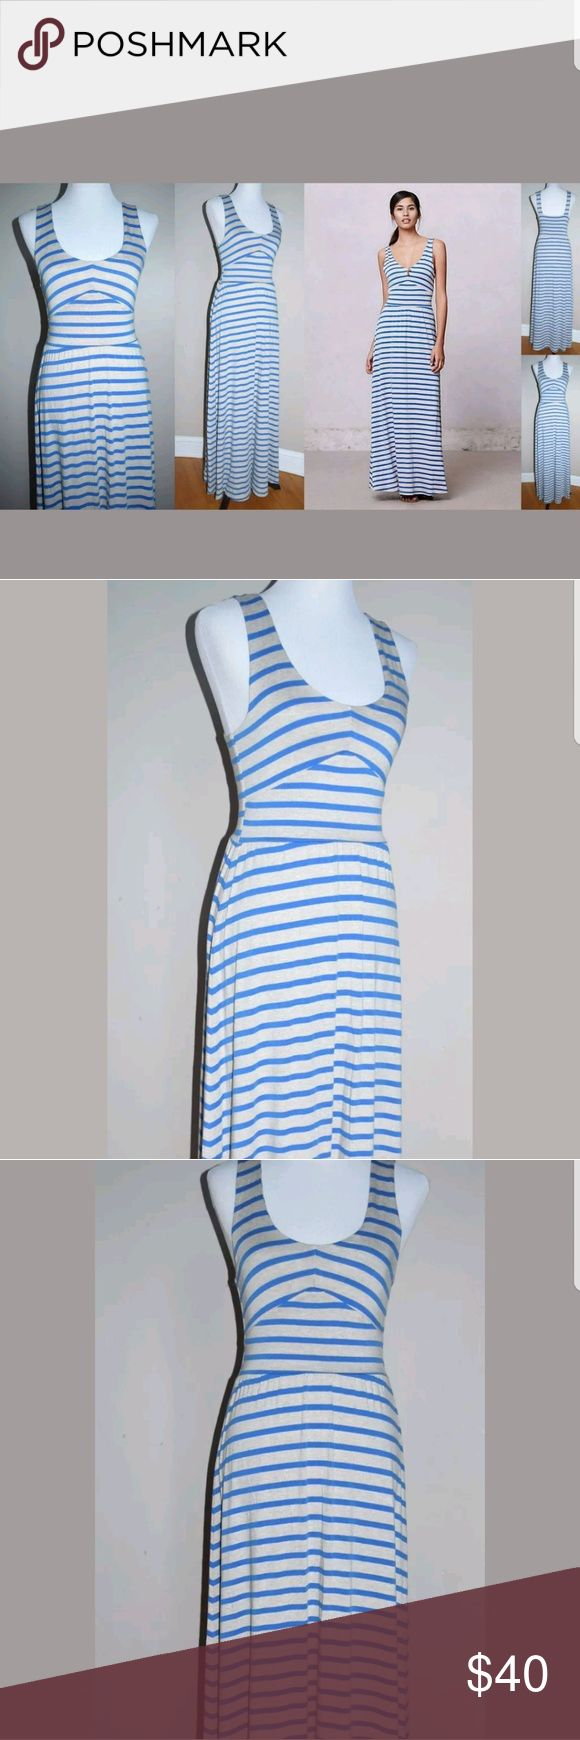 "Puella Anthropologie Blue Striped Maxi Dress Puella Anthropologie Blue/Oatmeal Striped Empire Day Dress Maxi Sundress (please check length measurement, dress is quite long)  Size XS   Length: 54""   Chest: 14.25""    Waist: 12""   Condition:  EUC   My items come from a smoke-free household, we do have a kitty, so an occasional hair may occur!  Washed in Cold and Hung Dry  Anthropologie Dresses Maxi"